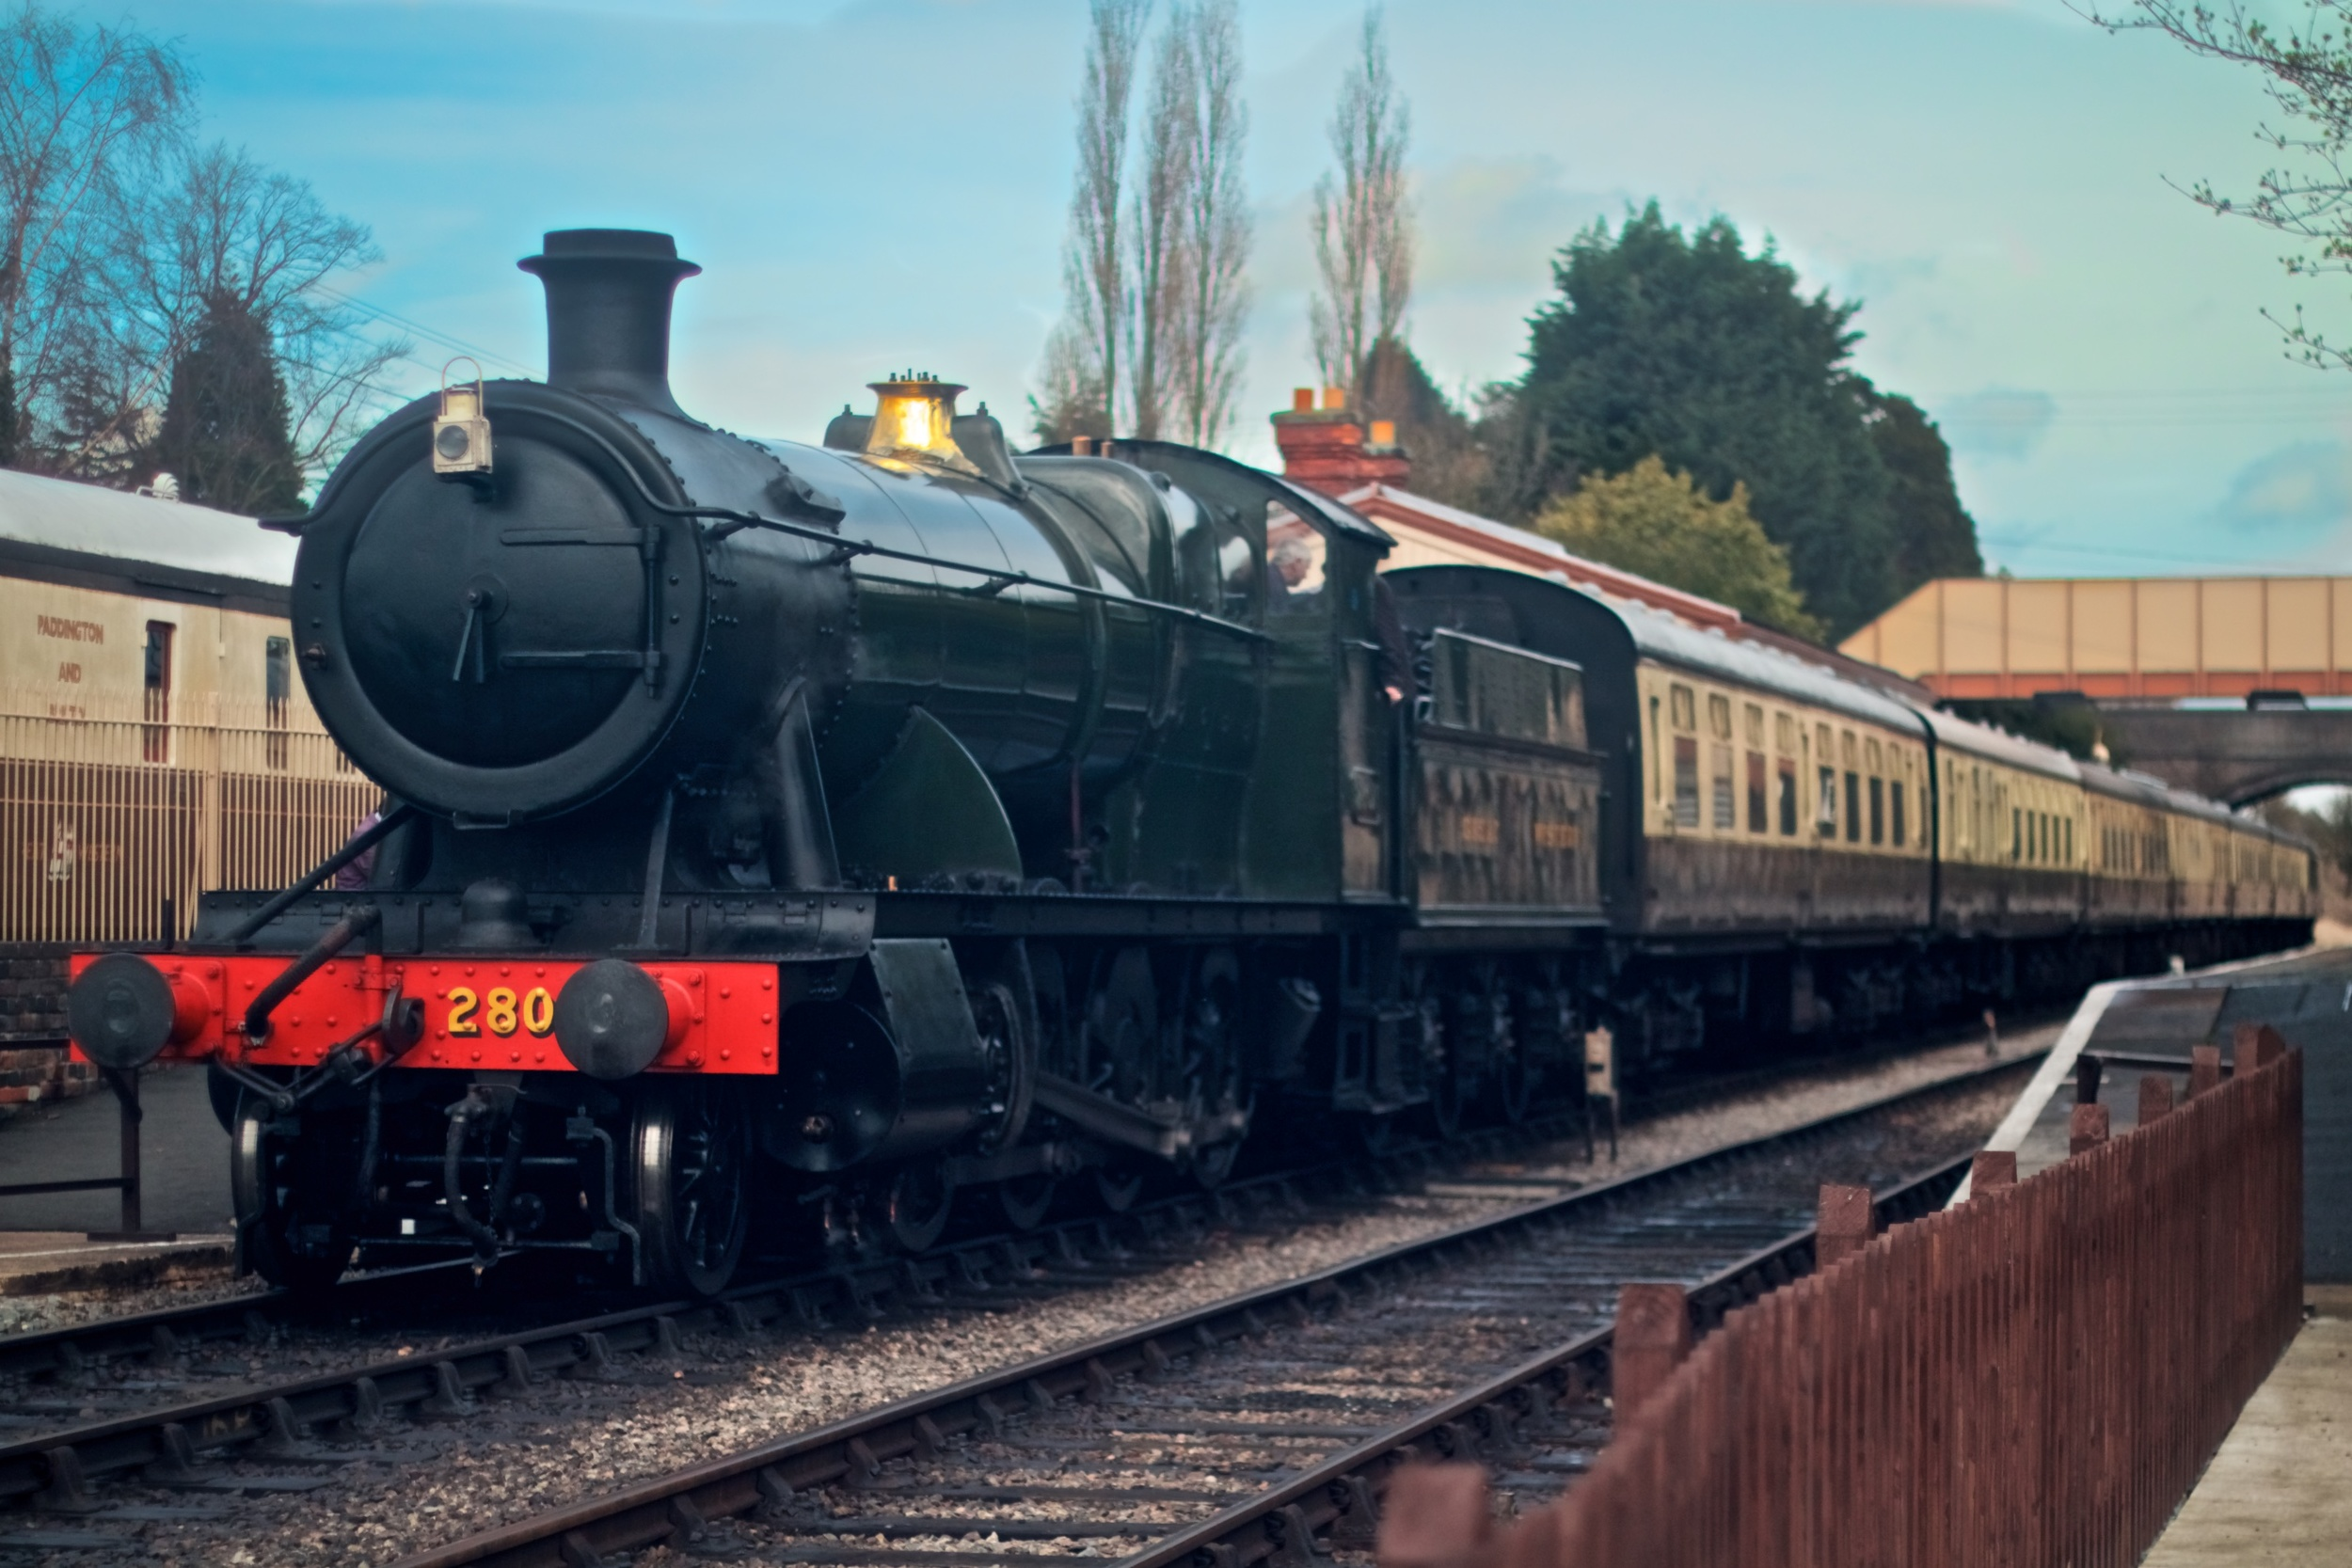 28xx class loco on the Gloucester and Warwickshire Railway - Photo: Gwion Rhys Davies